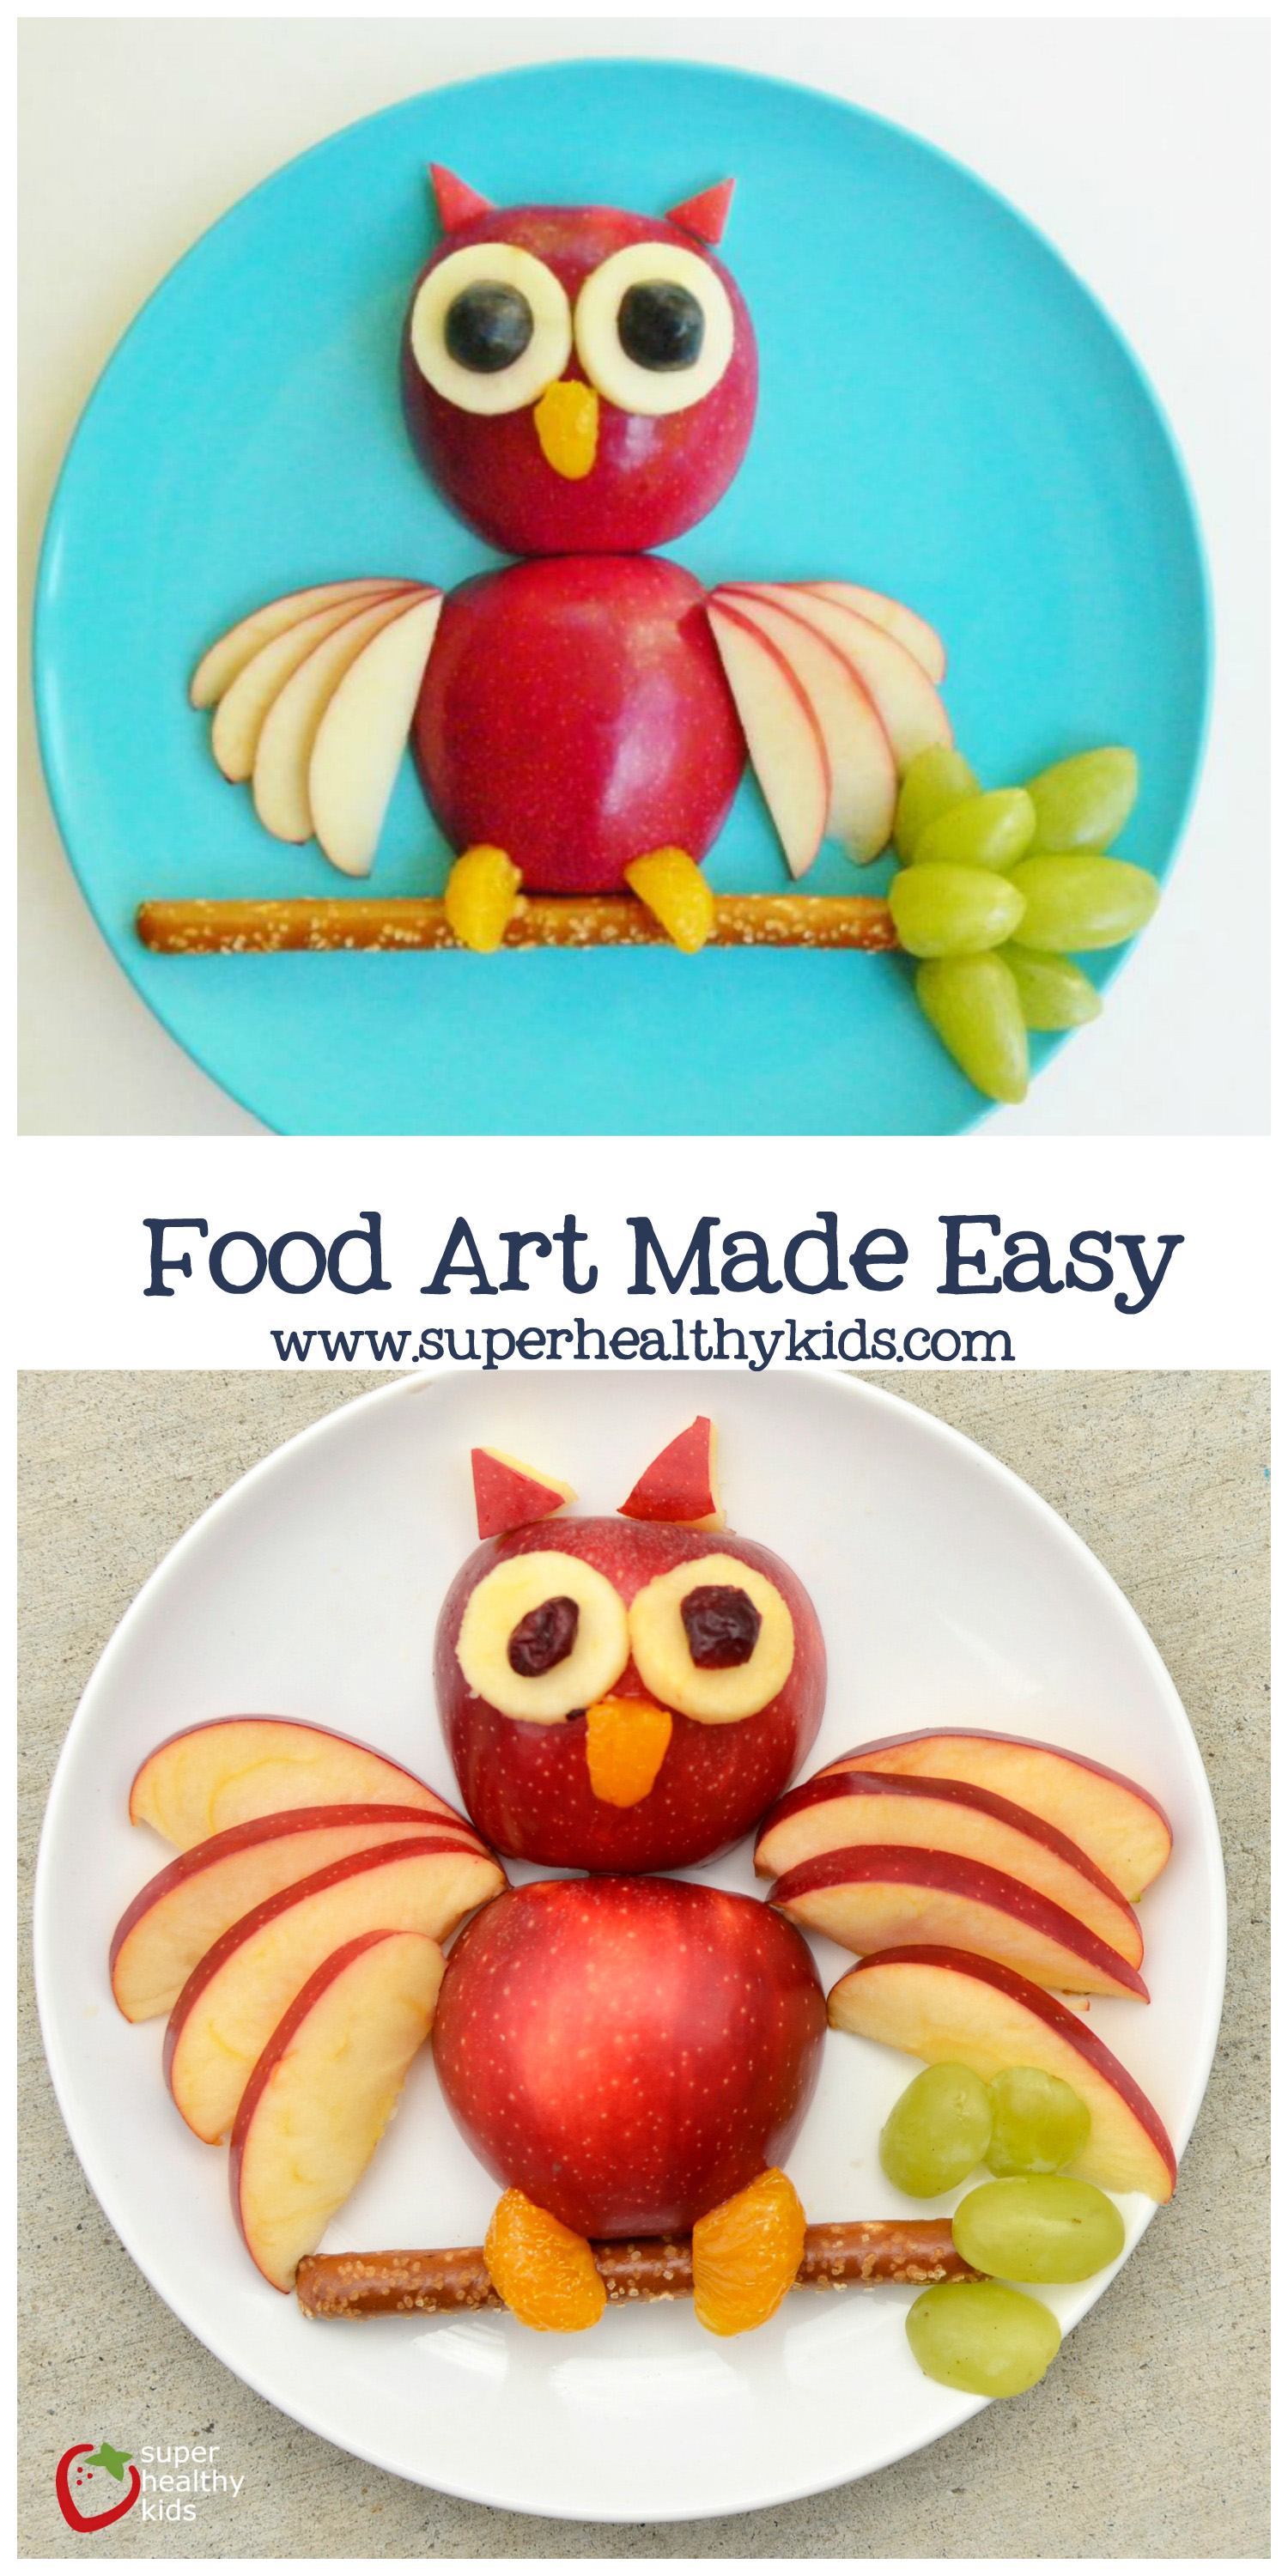 Food art made easy healthy ideas for kids food art made easy the easy way to create fun food forumfinder Image collections